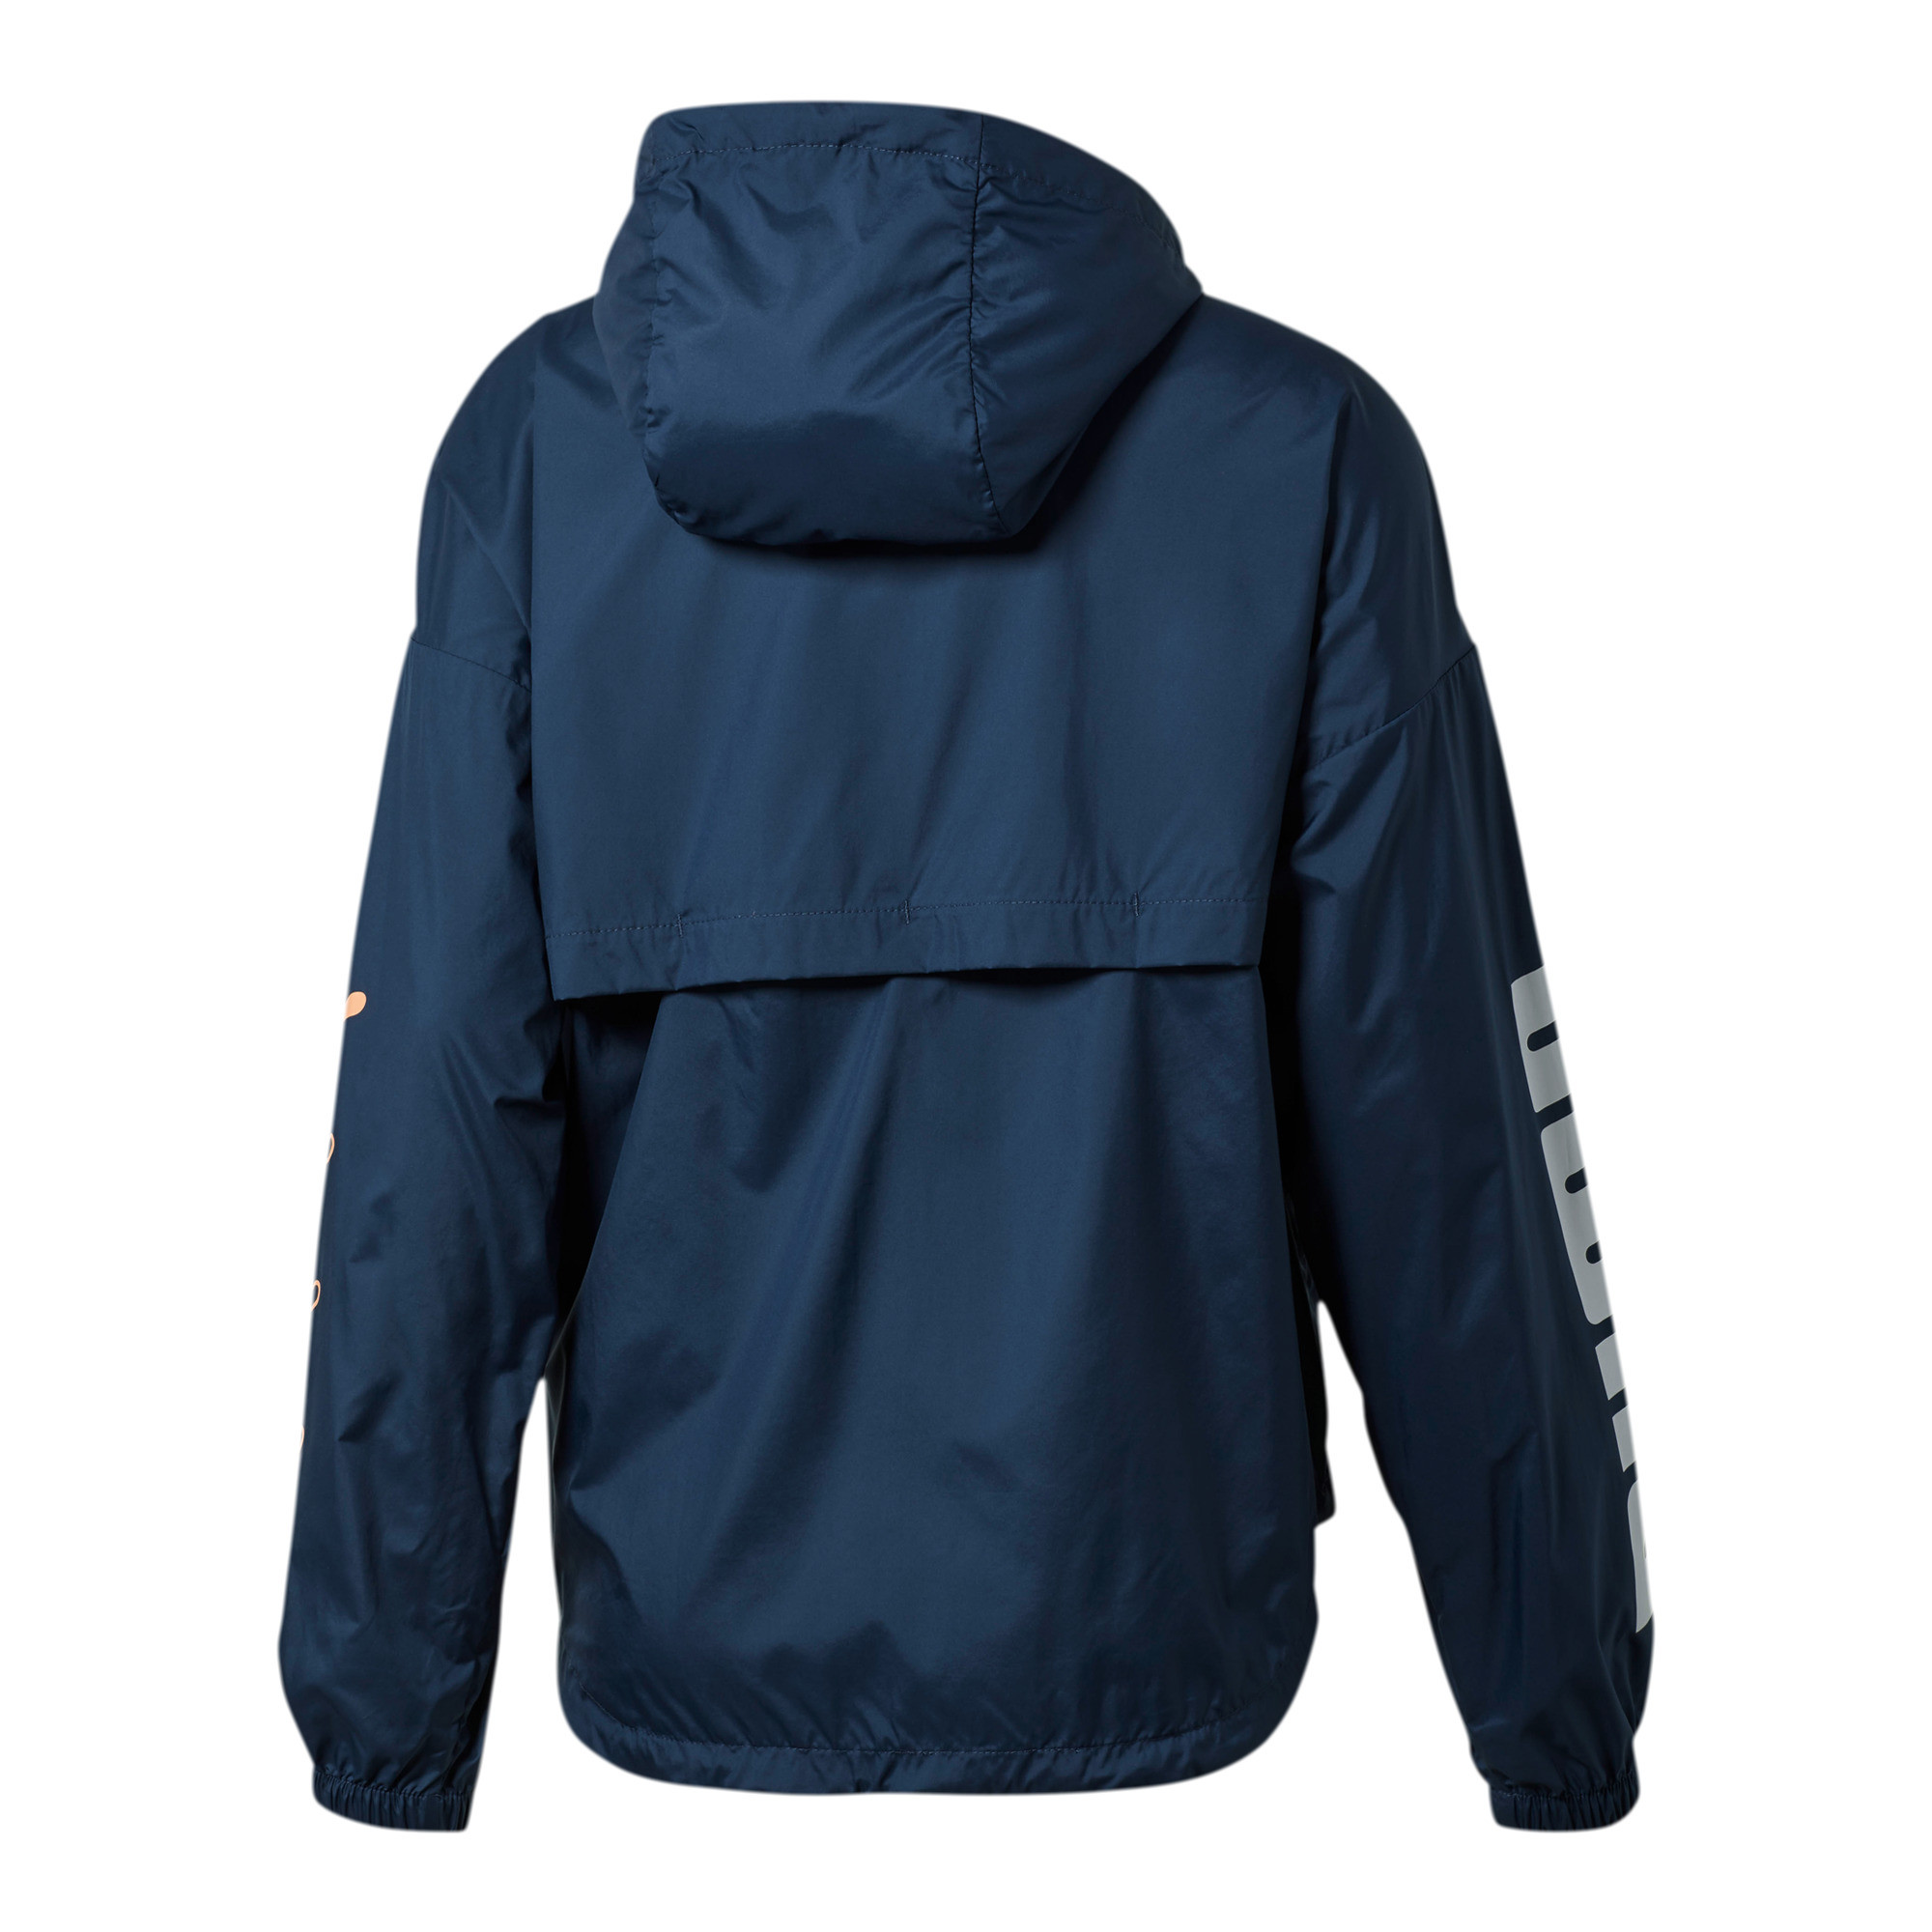 PUMA-Women-039-s-Half-Zip-Windbreaker thumbnail 8